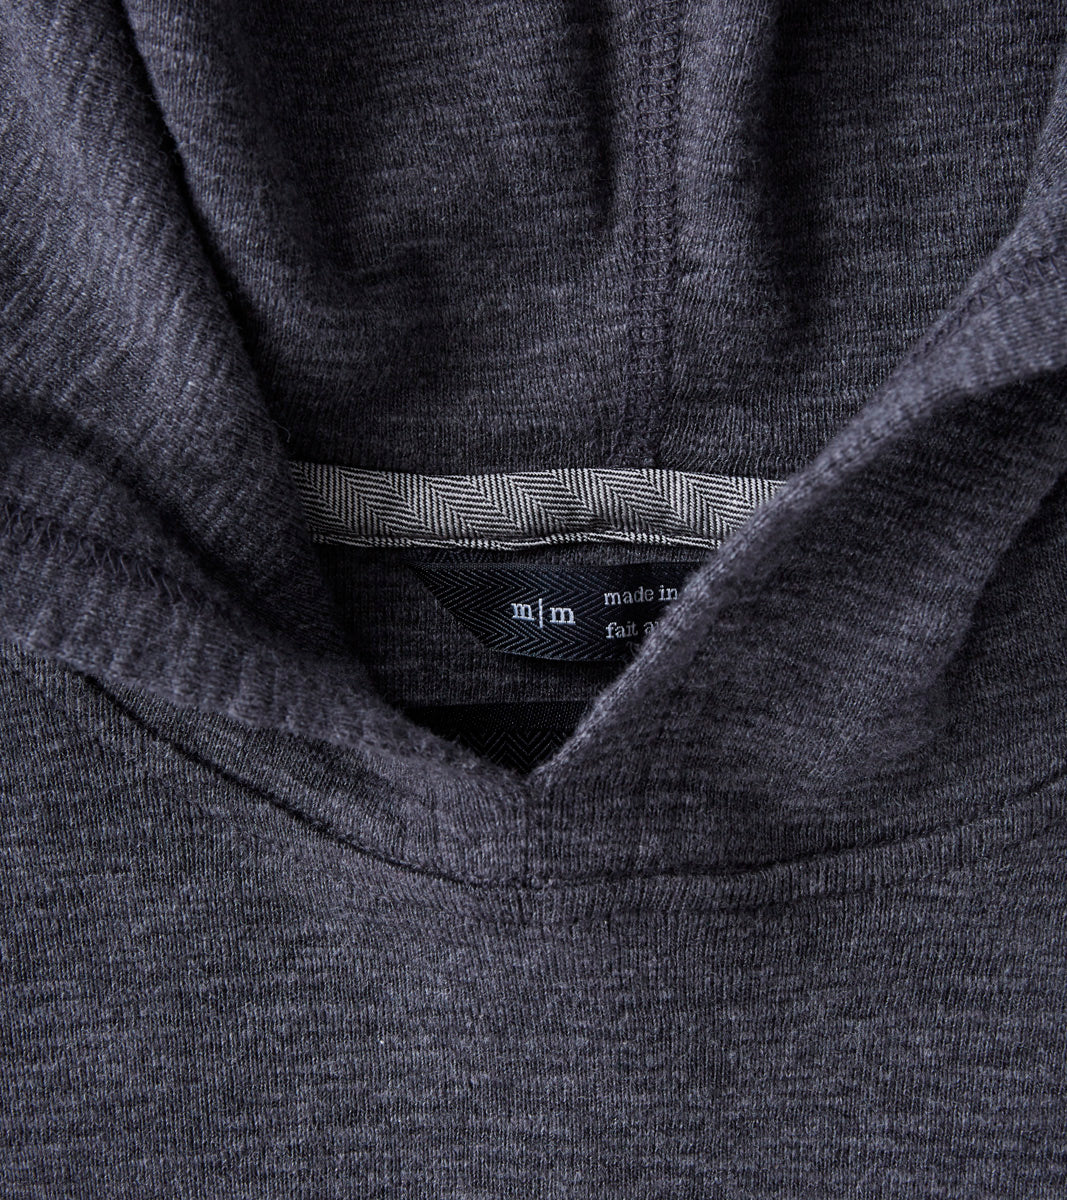 Sizing Chart With Common Left Chest Heart And Pocket: Wings+horns Base 1x1 Slub Hooded Pullover